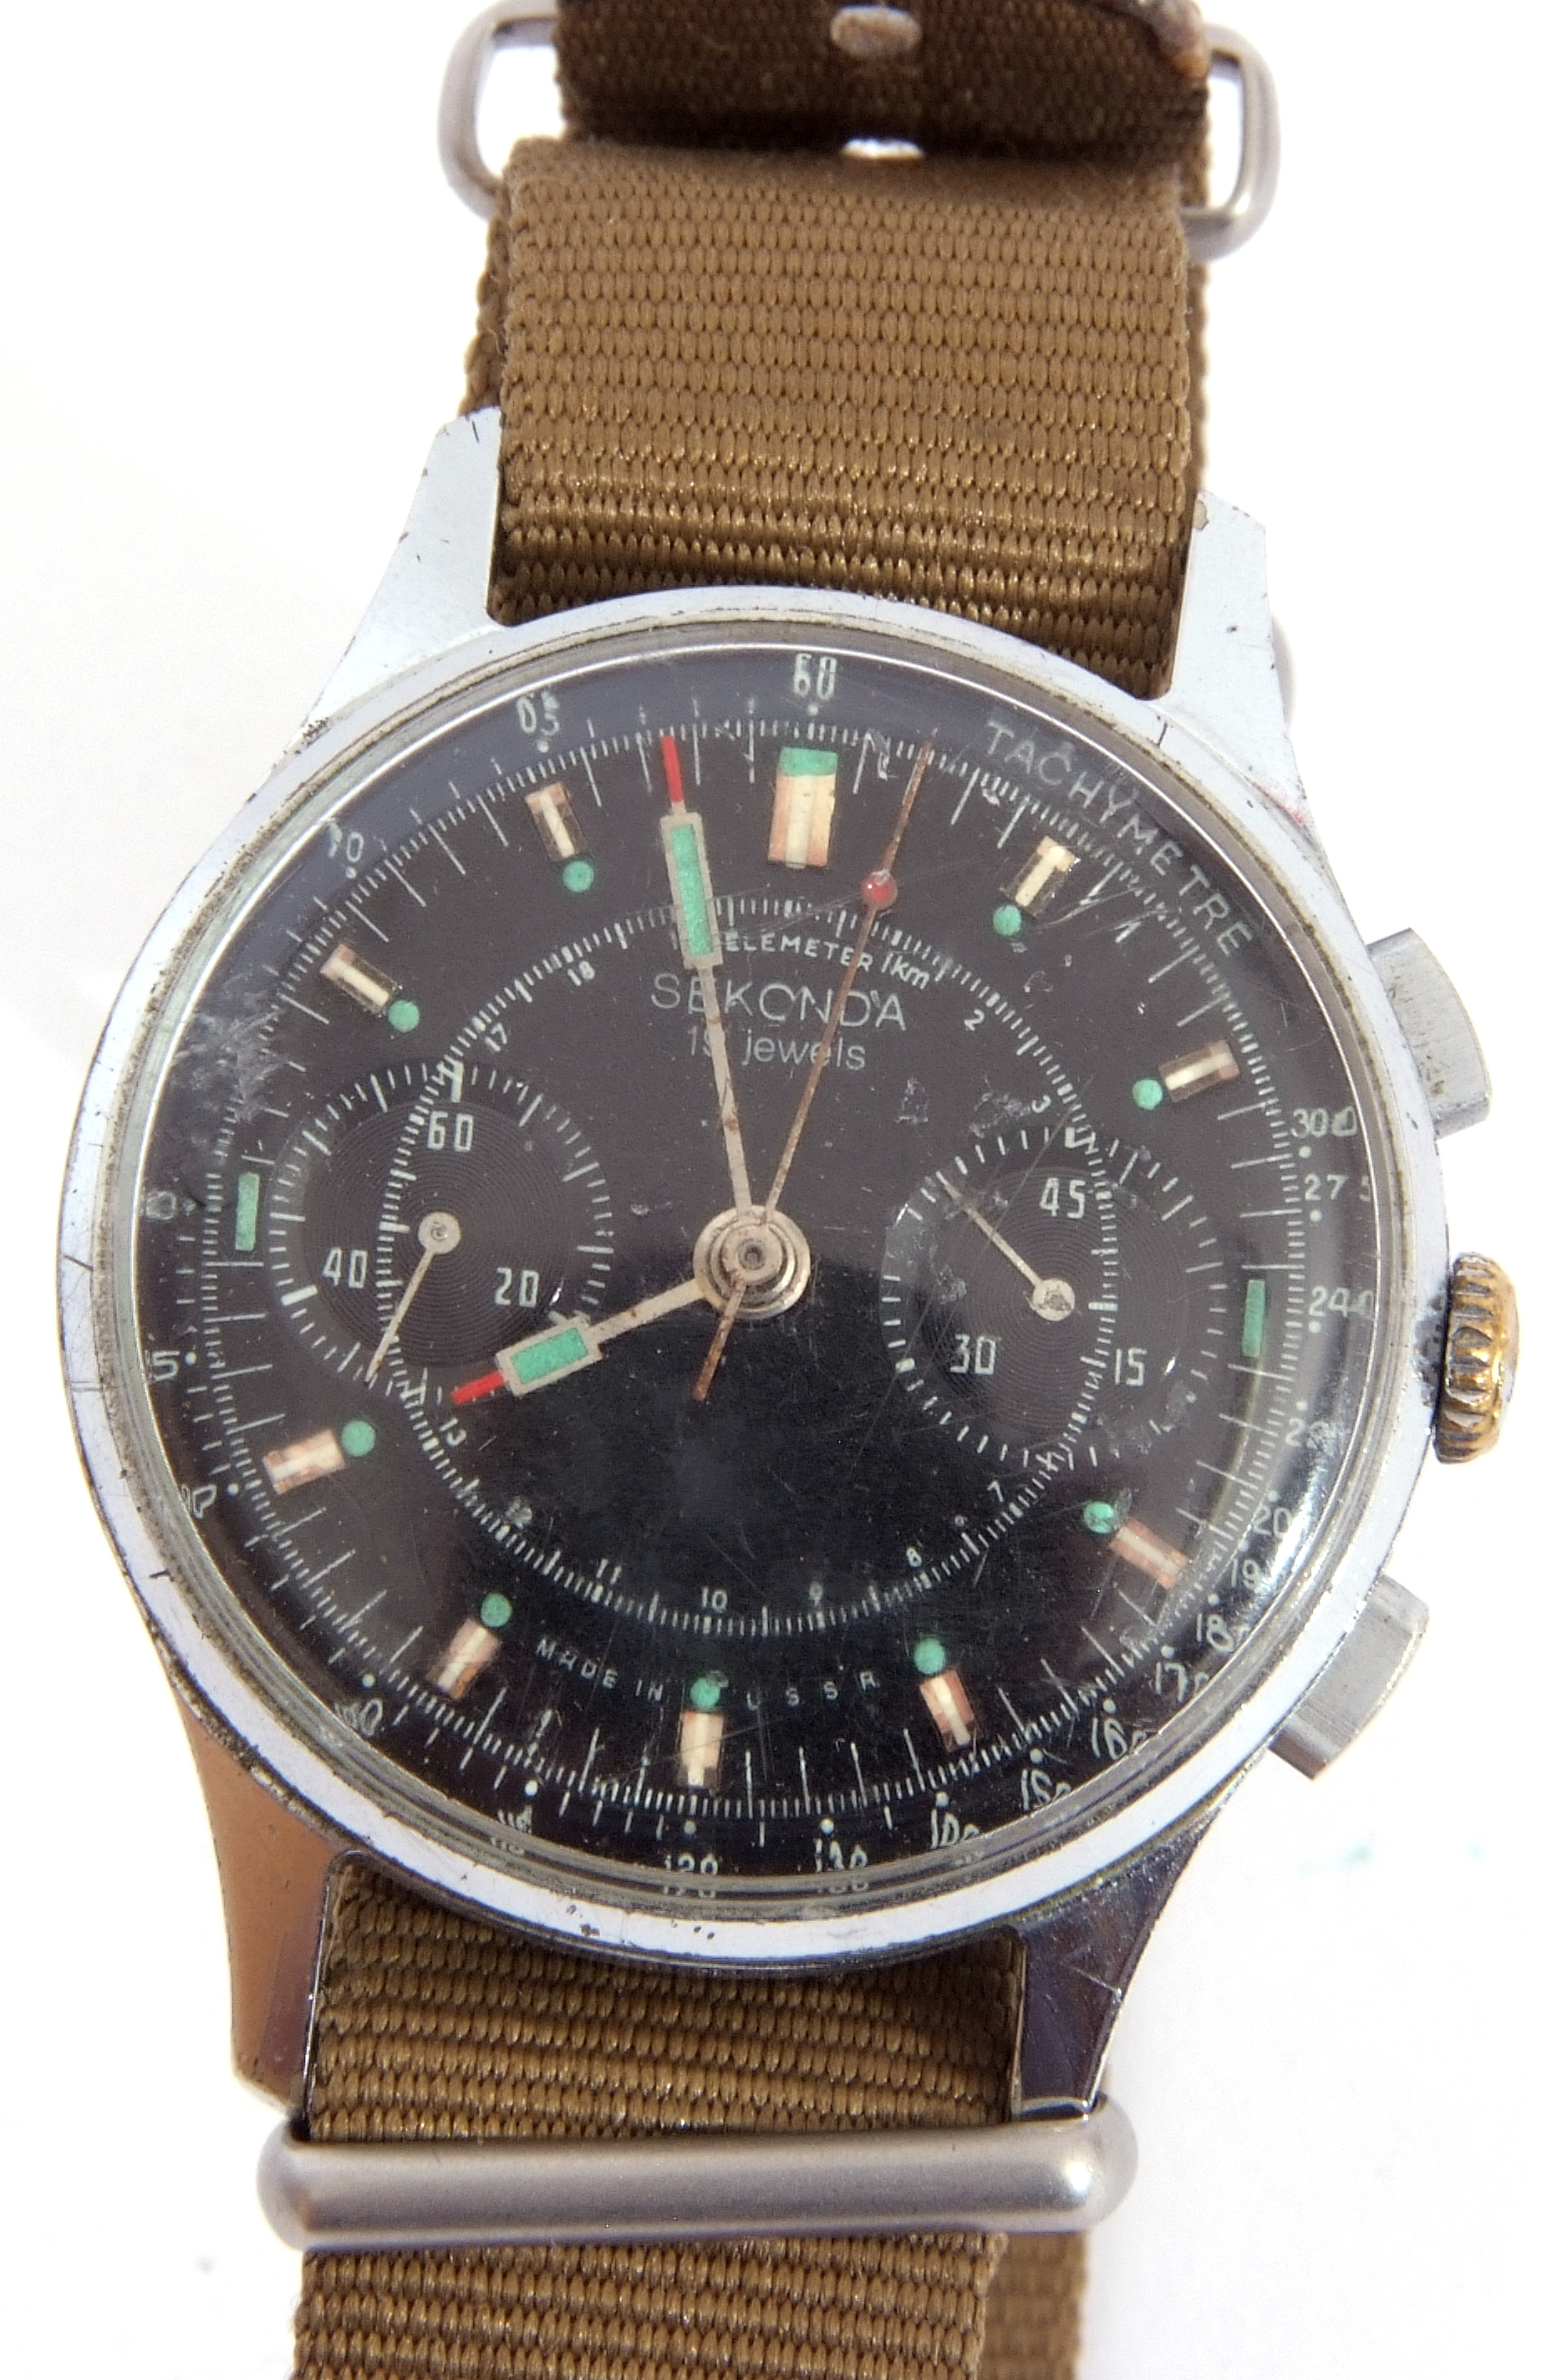 Third quarter of 20th century Sekonda centre seconds wrist chronograph watch case, stainless steel - Image 5 of 6